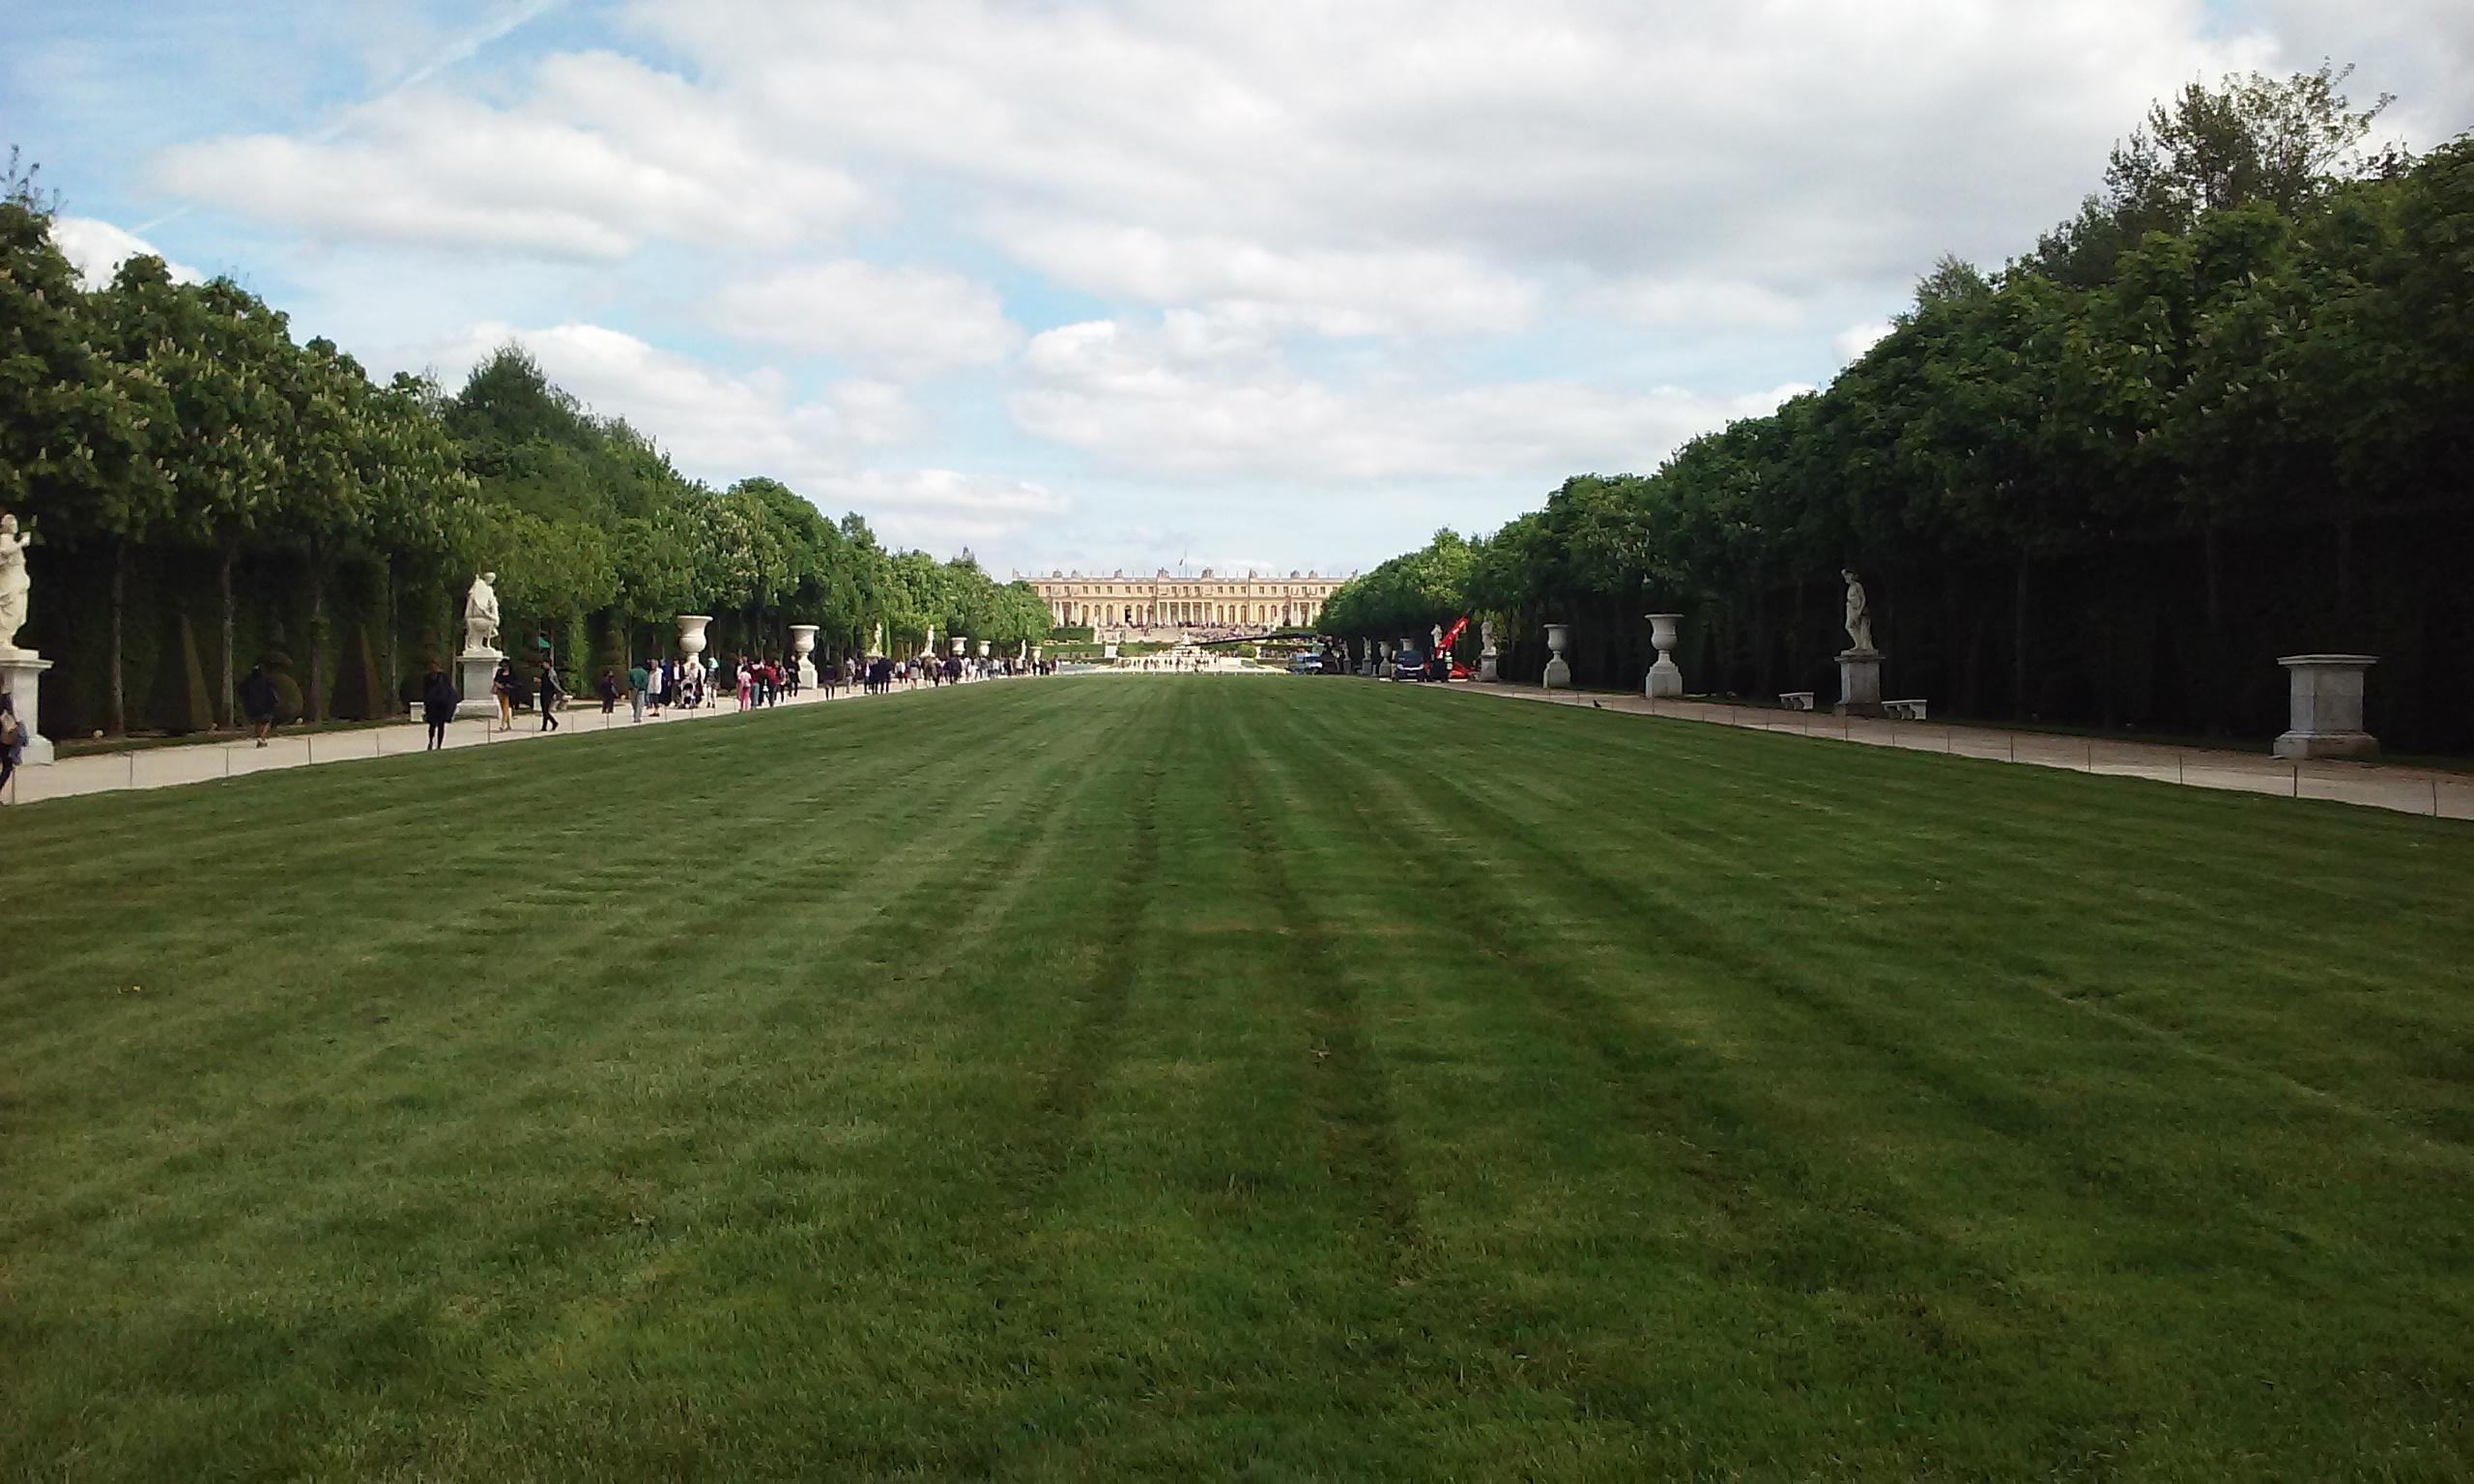 A long grass lawn leading to the Palace of Versailles. Beyond this lawn is the Grand Canal